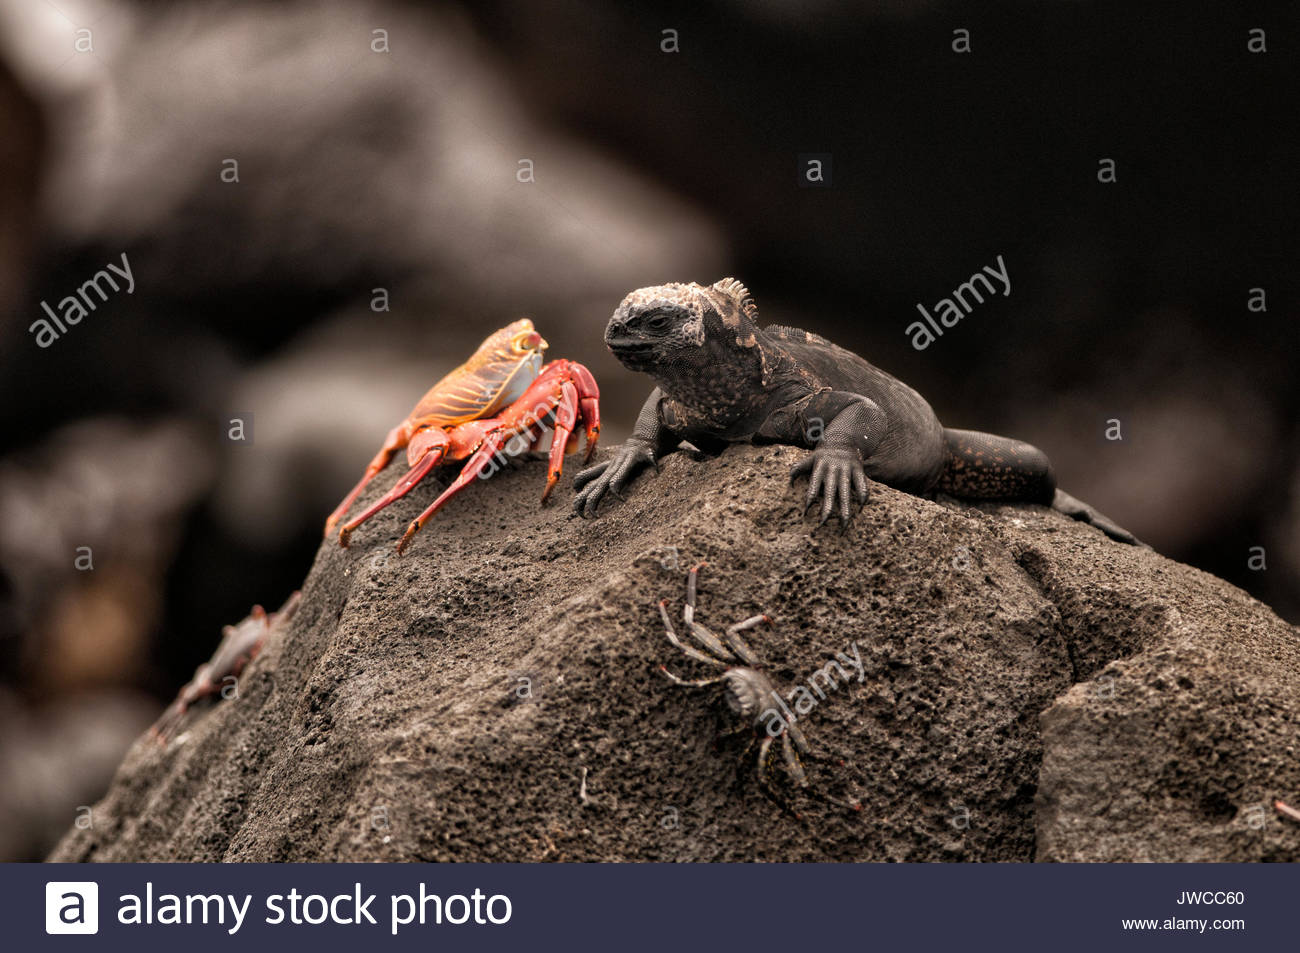 A marine iguana face to face with a red rock crab,or Sally lightfoot crab,Grapsus grapsus - Stock Image